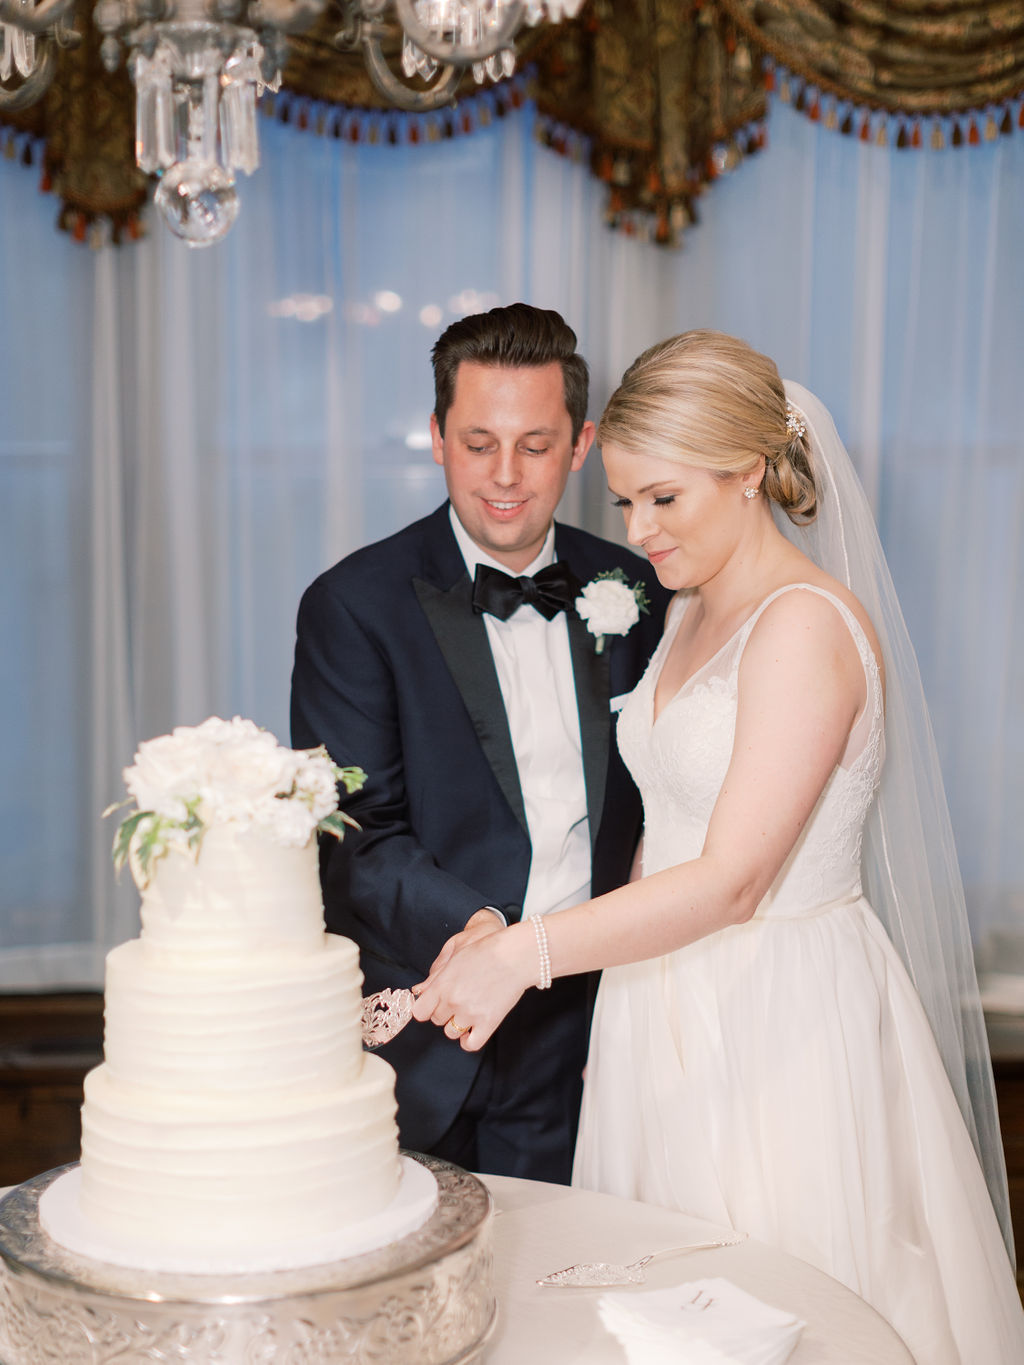 Bride and Groom Cutting Cake at Wedding Venue Nashville